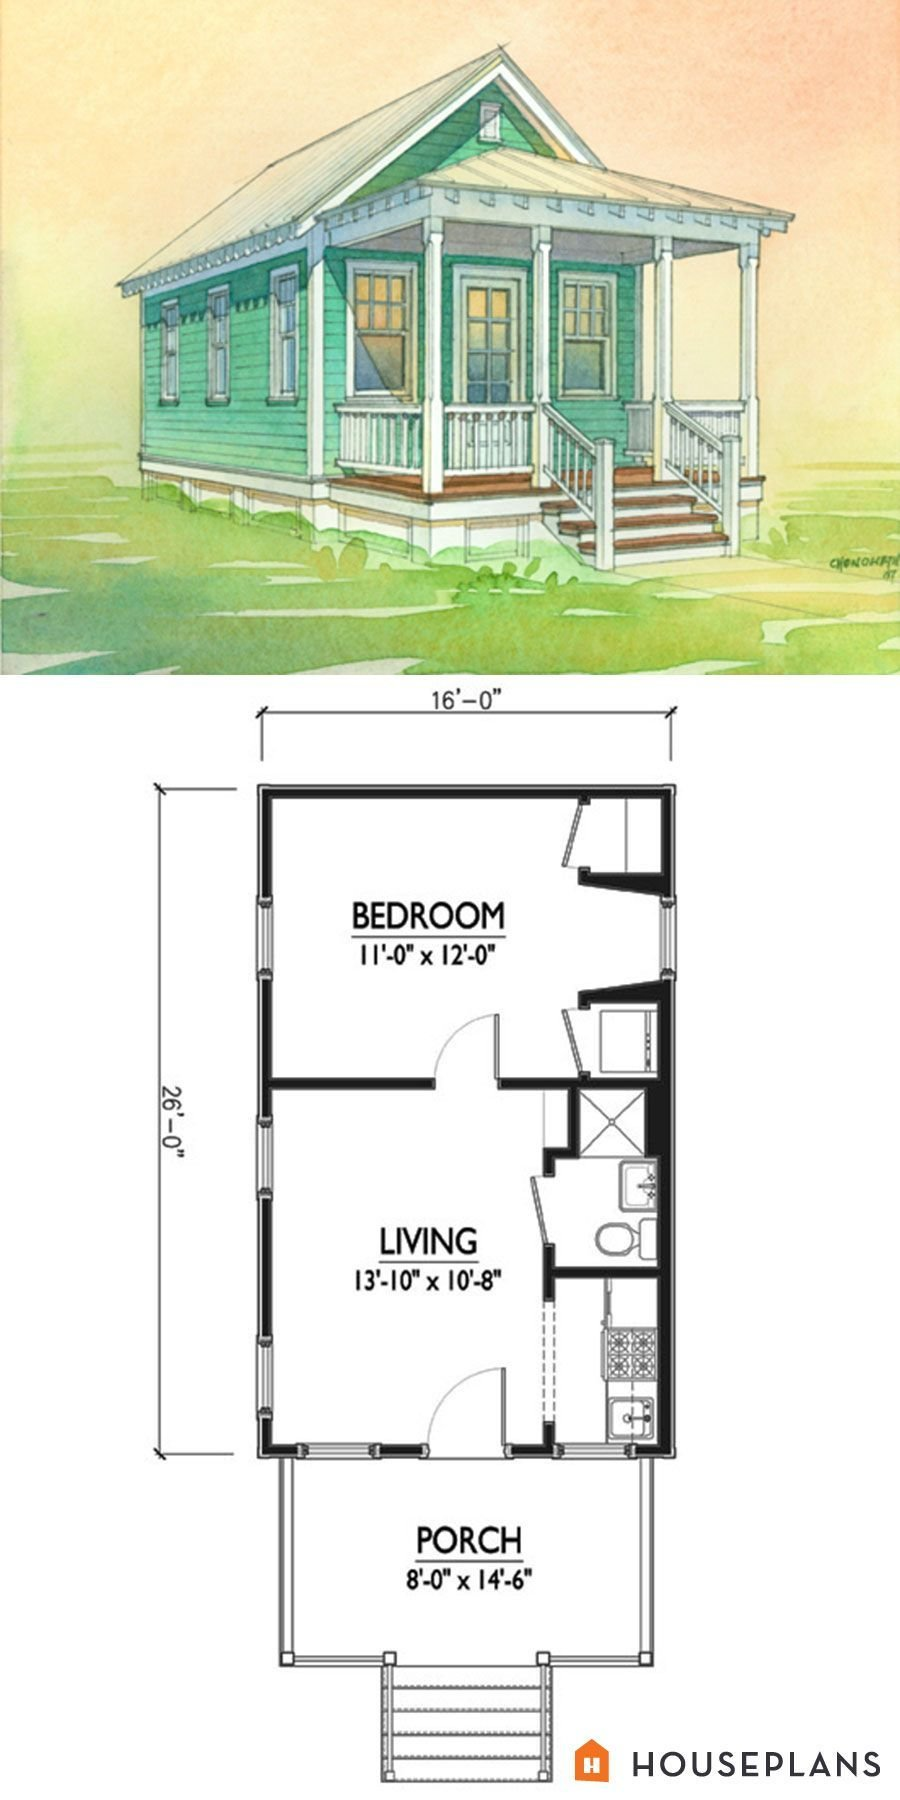 Best Charming Tiny Cottage Plan By Marianne Cusato 400Sft 1 With Pictures